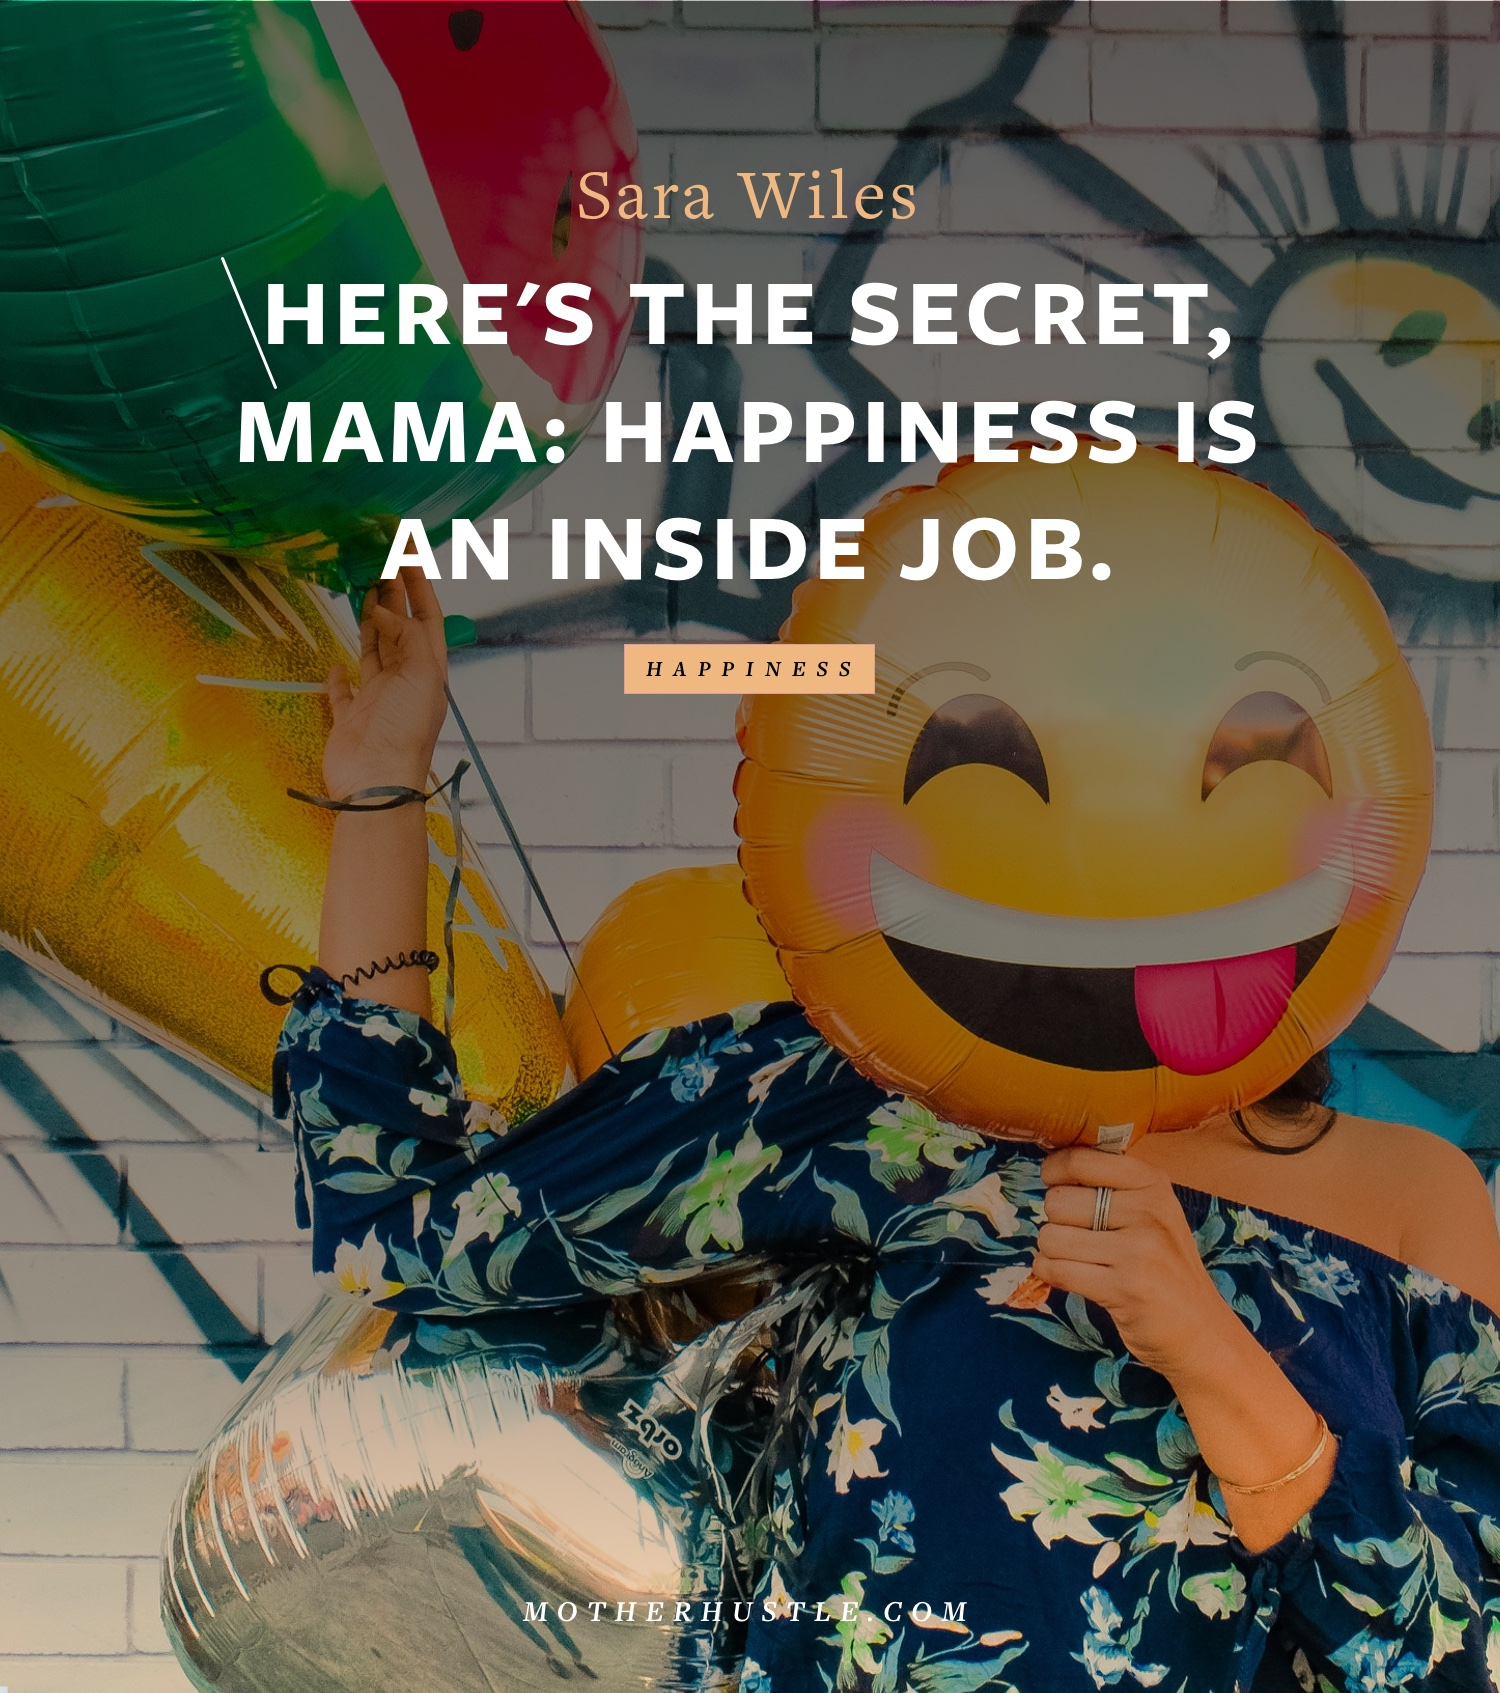 Here's The Secret, Mama- Happiness Is An Inside Job - by Sara Wiles for MotherHustle